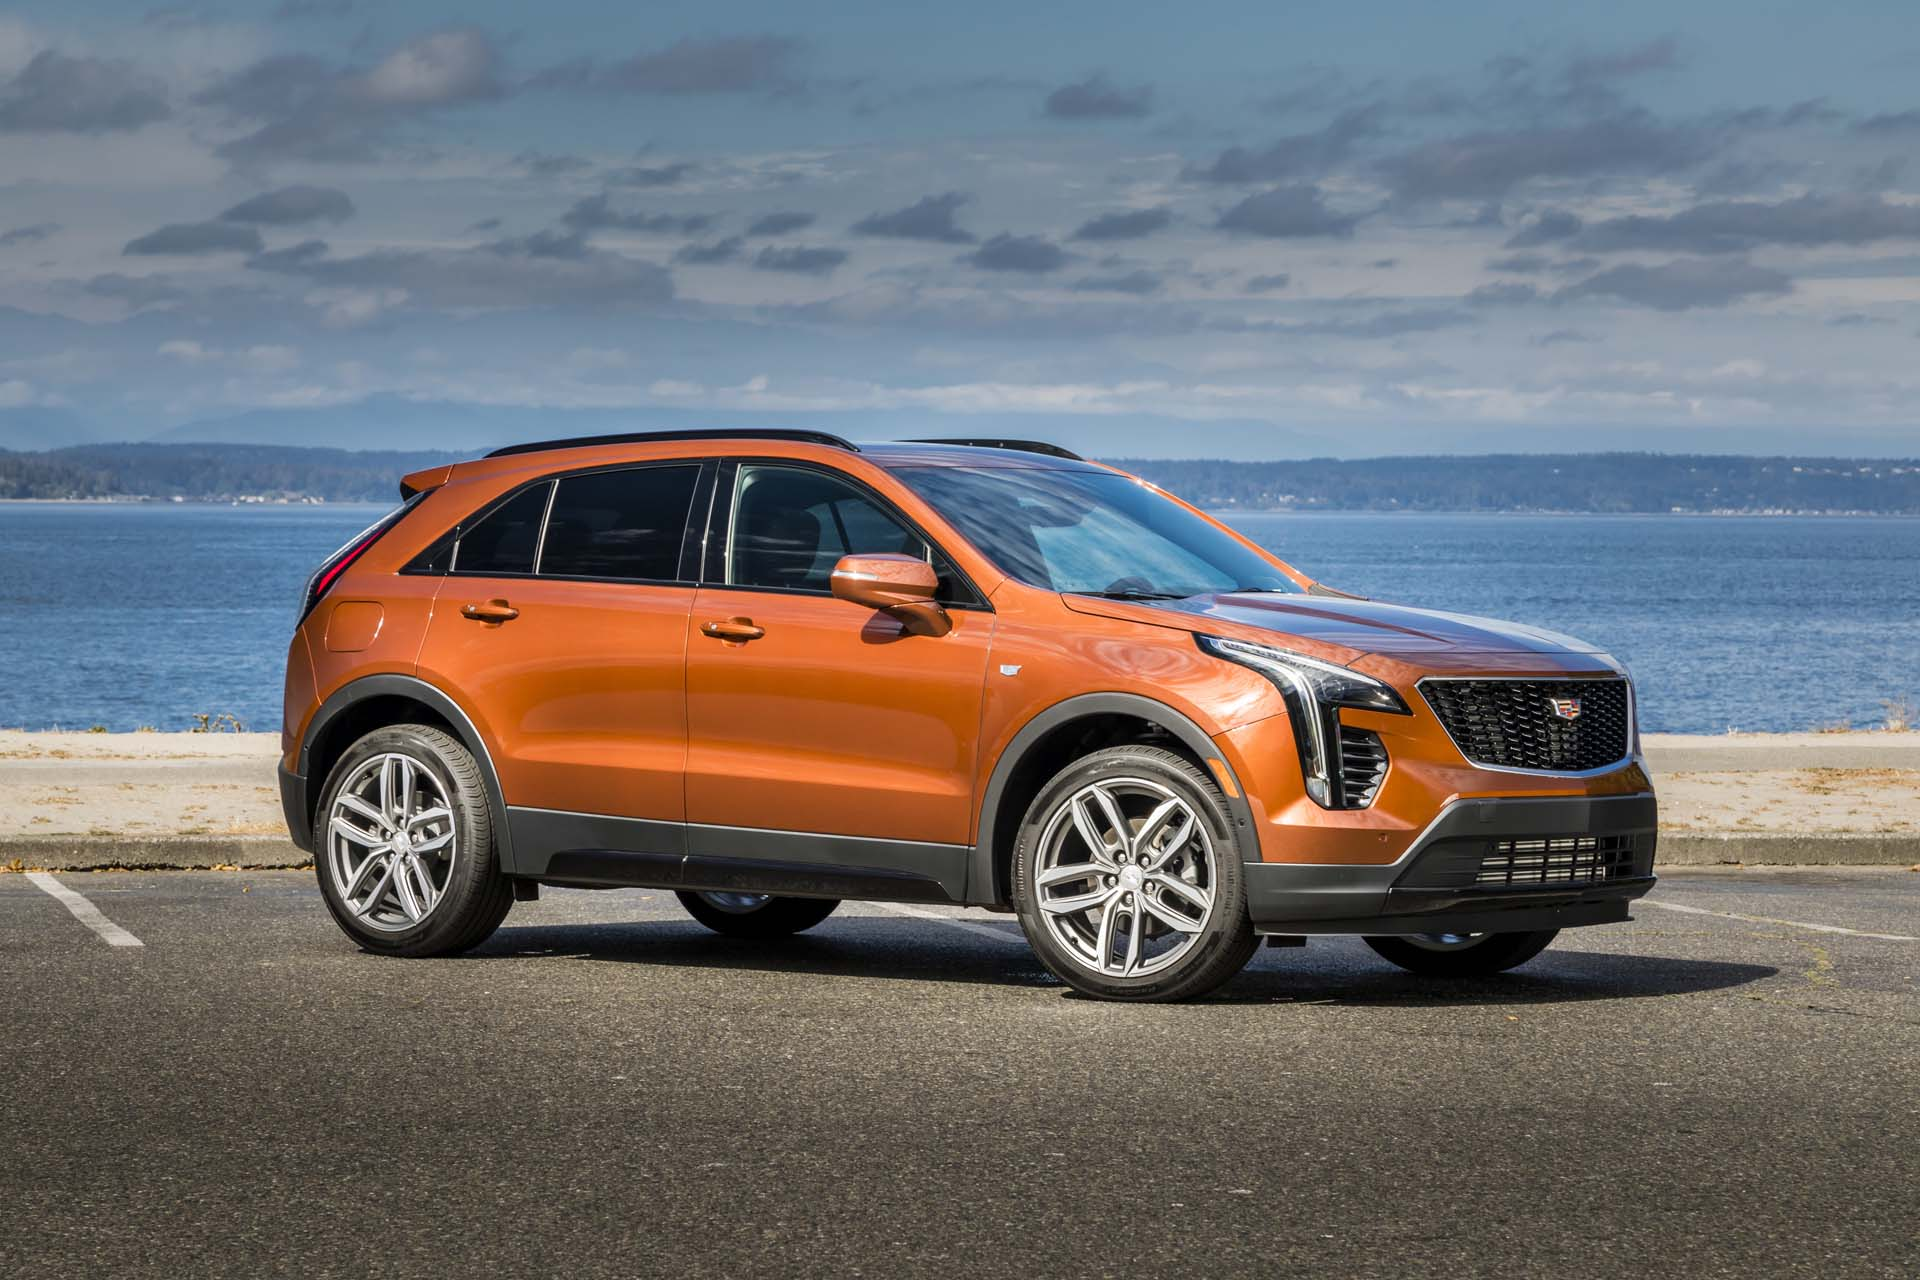 2019 Cadillac XT4 Review, Ratings, Specs, Prices, and Photos - The Car Connection